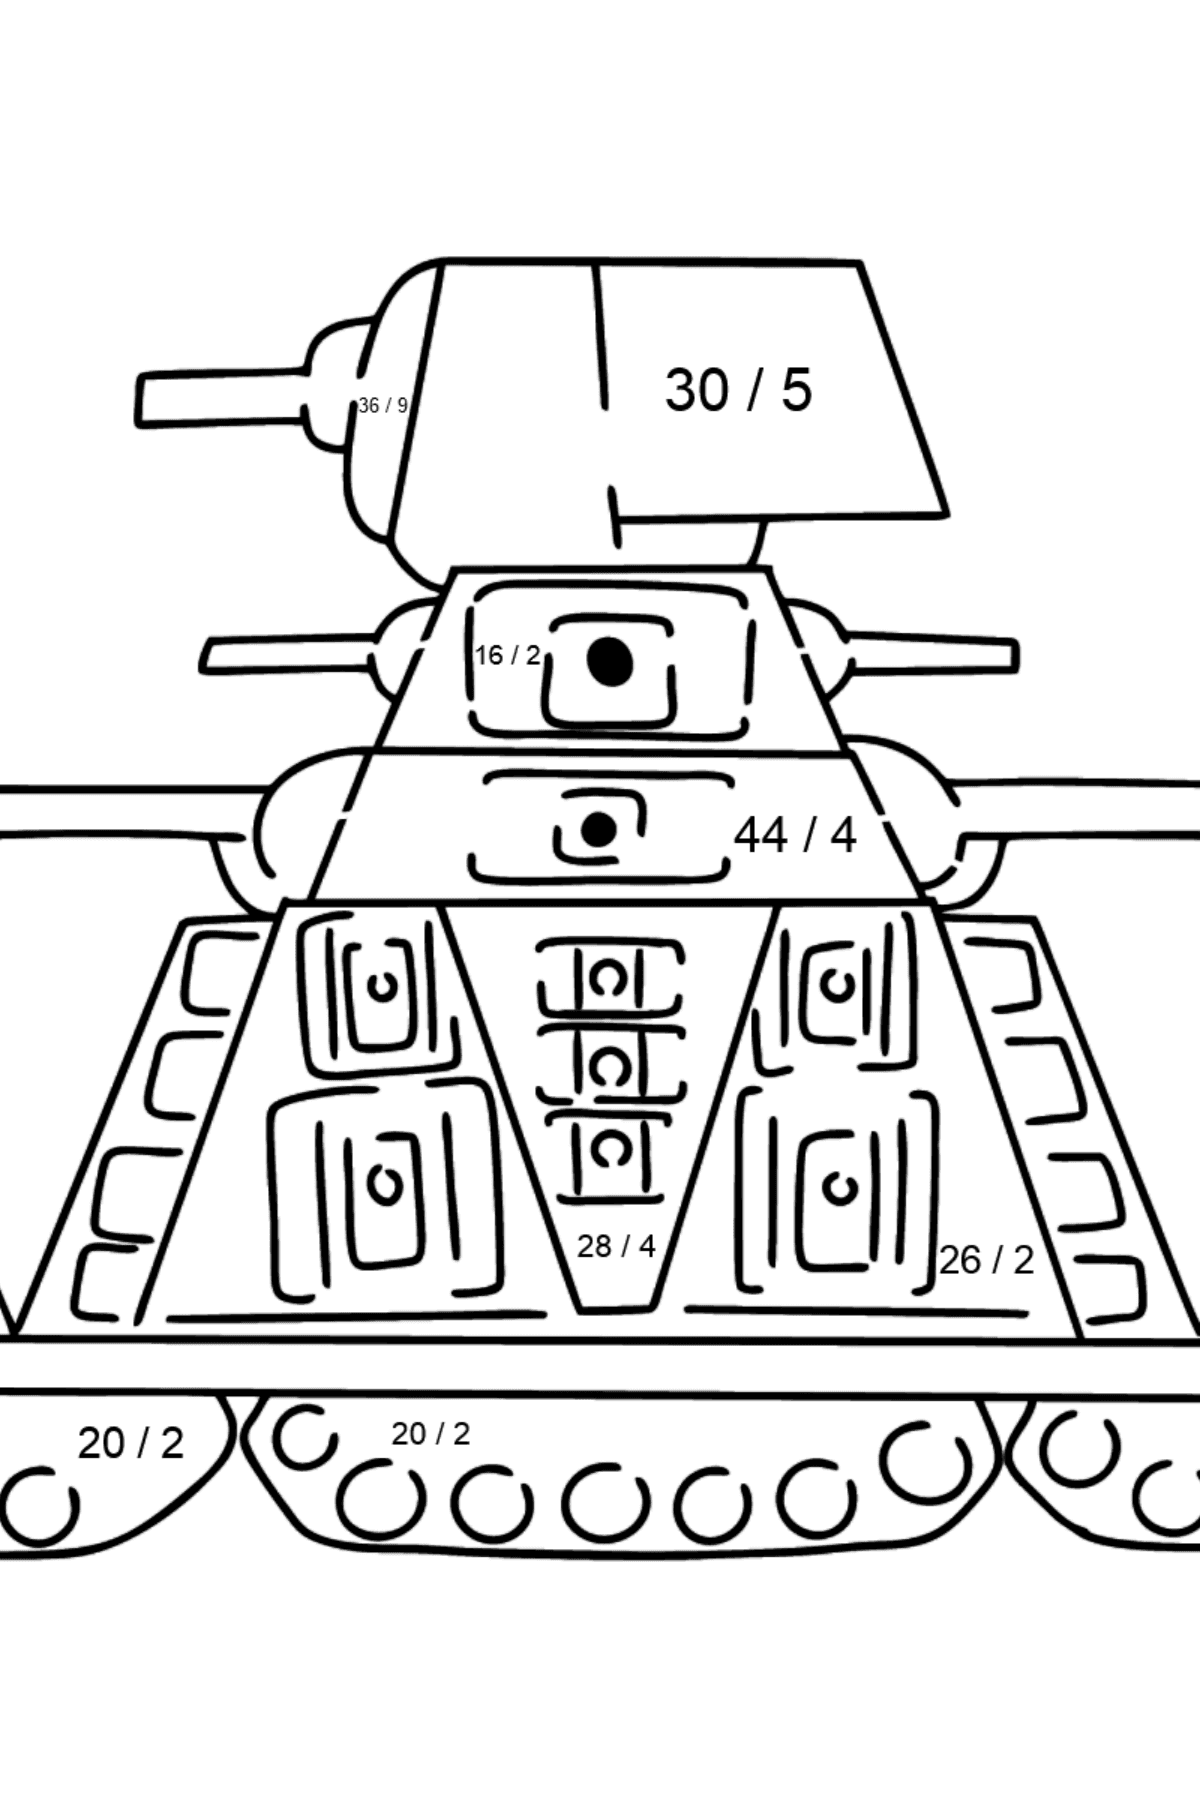 Tank KV 44 coloring page - Math Coloring - Division for Kids